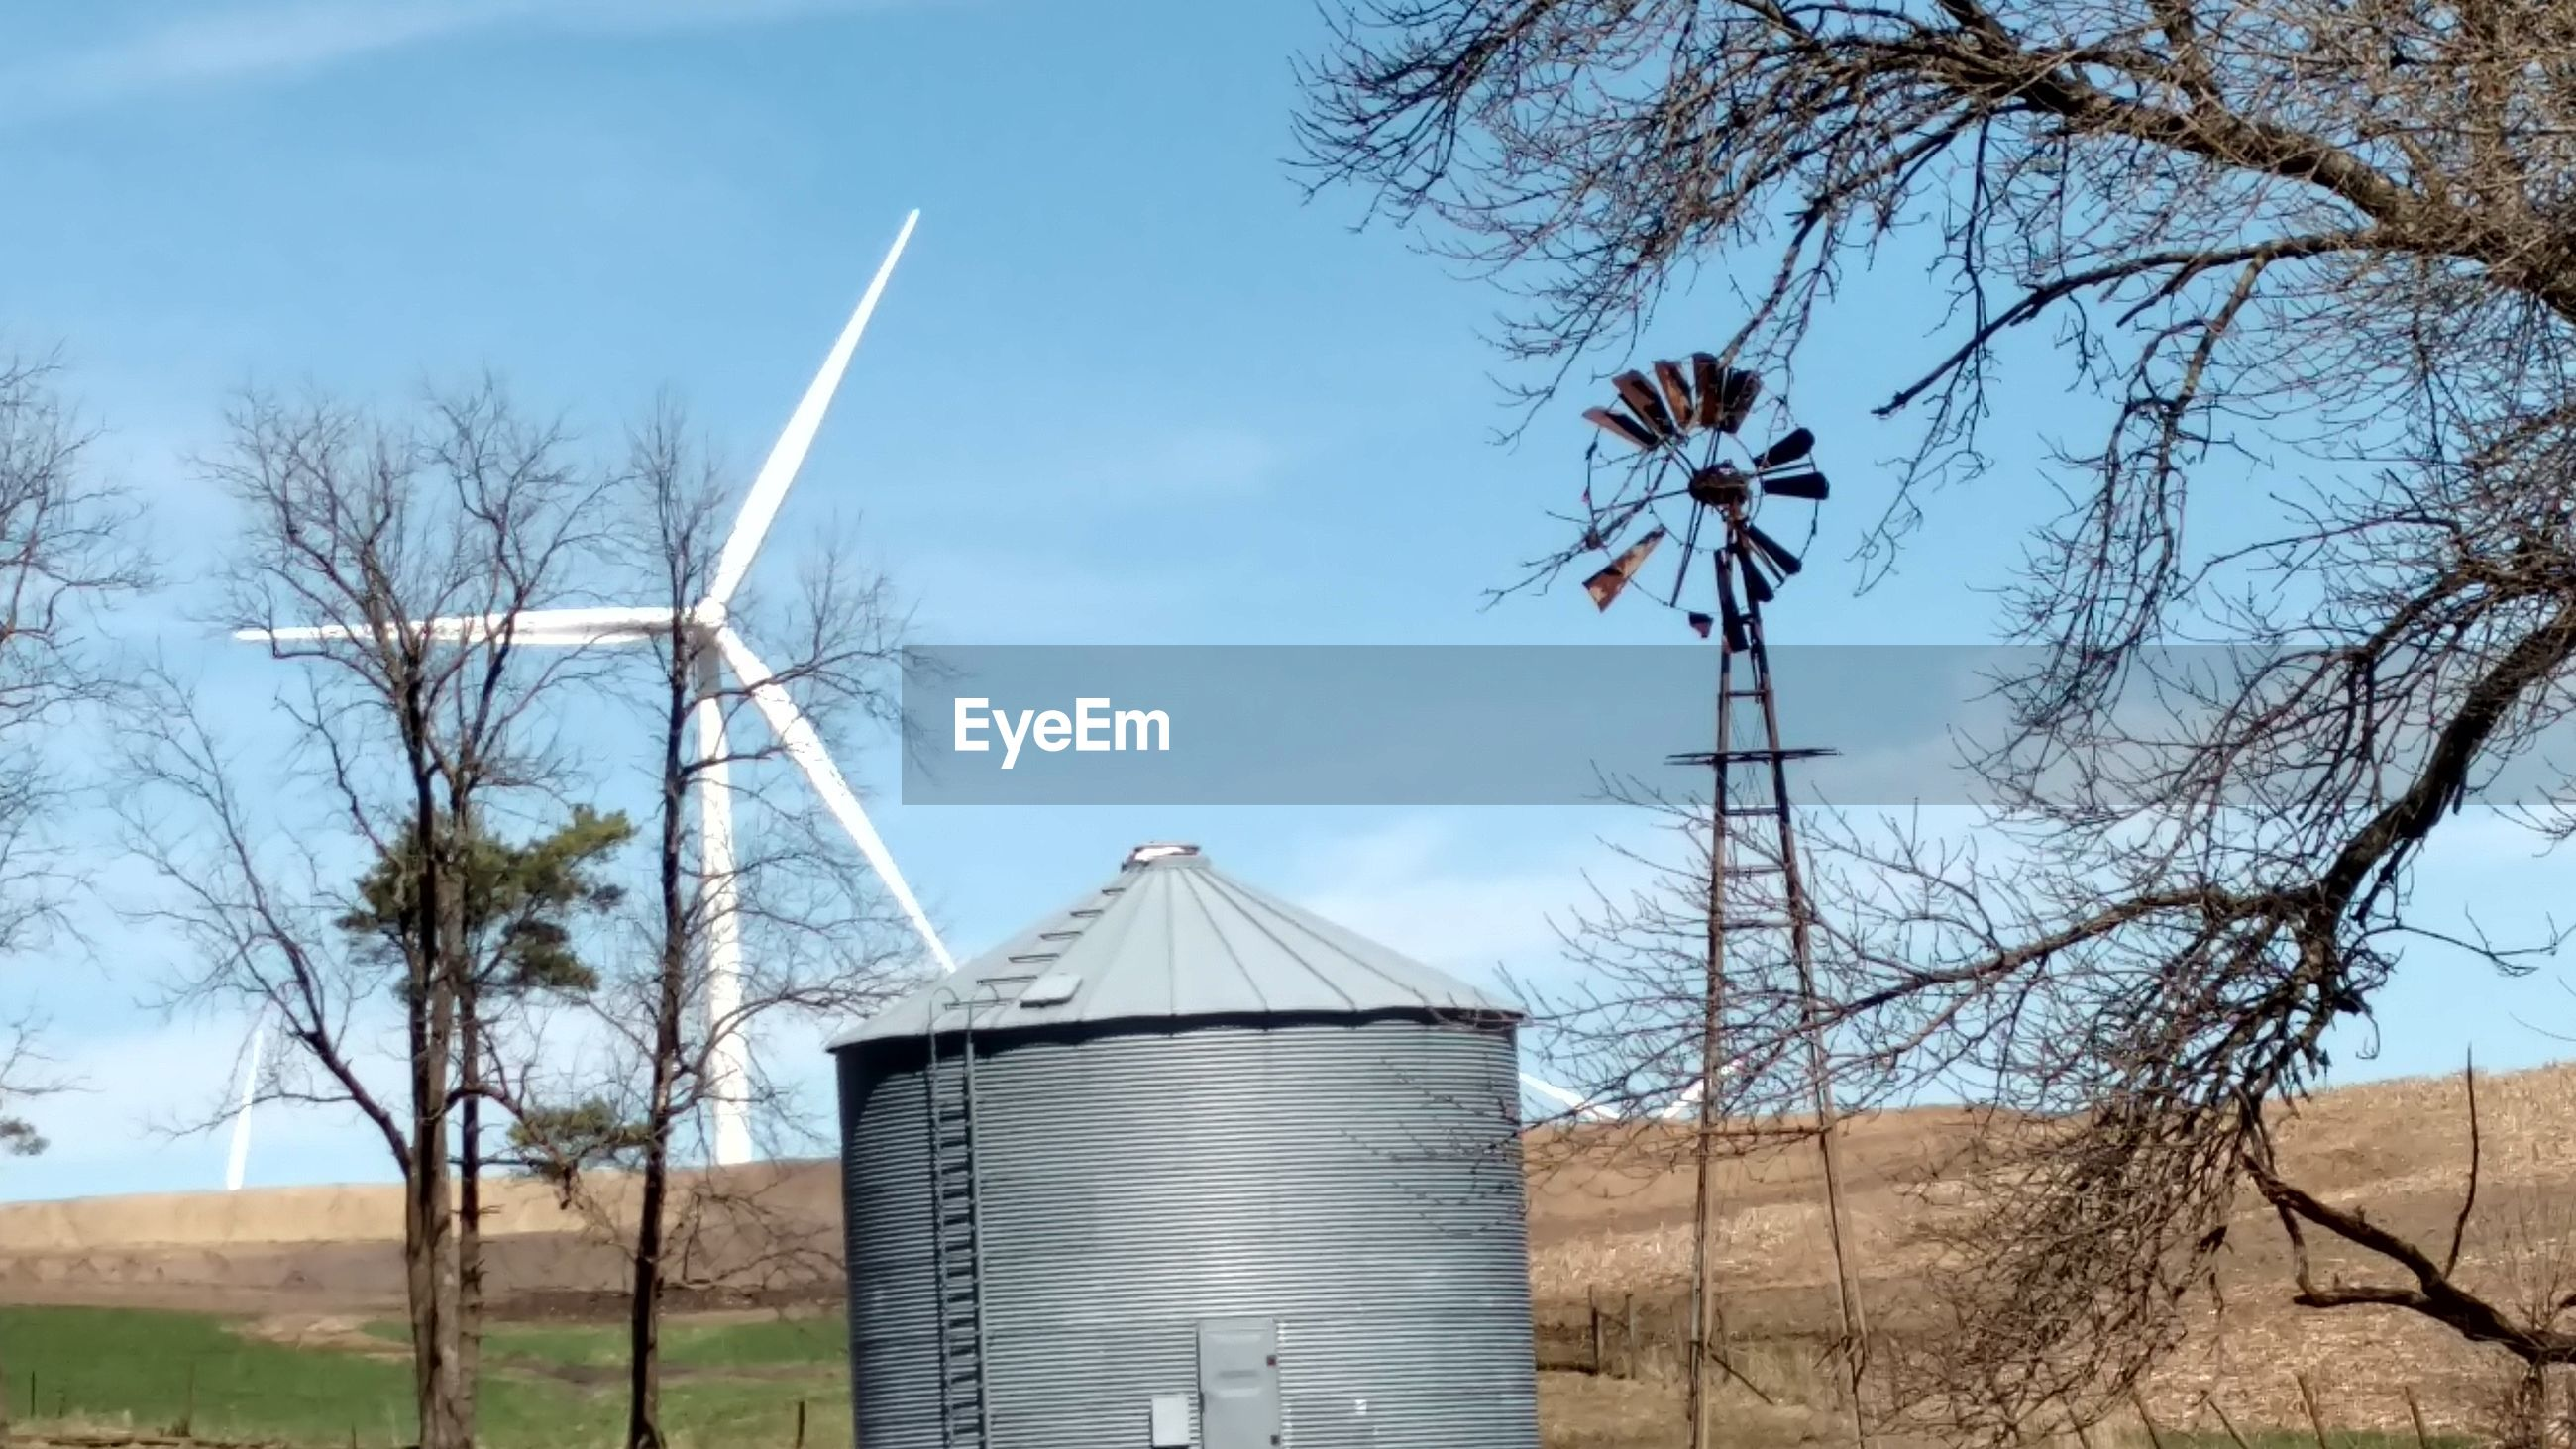 renewable energy, alternative energy, turbine, wind turbine, fuel and power generation, environmental conservation, wind power, sky, tree, plant, environment, landscape, built structure, nature, bare tree, day, rural scene, no people, building exterior, field, outdoors